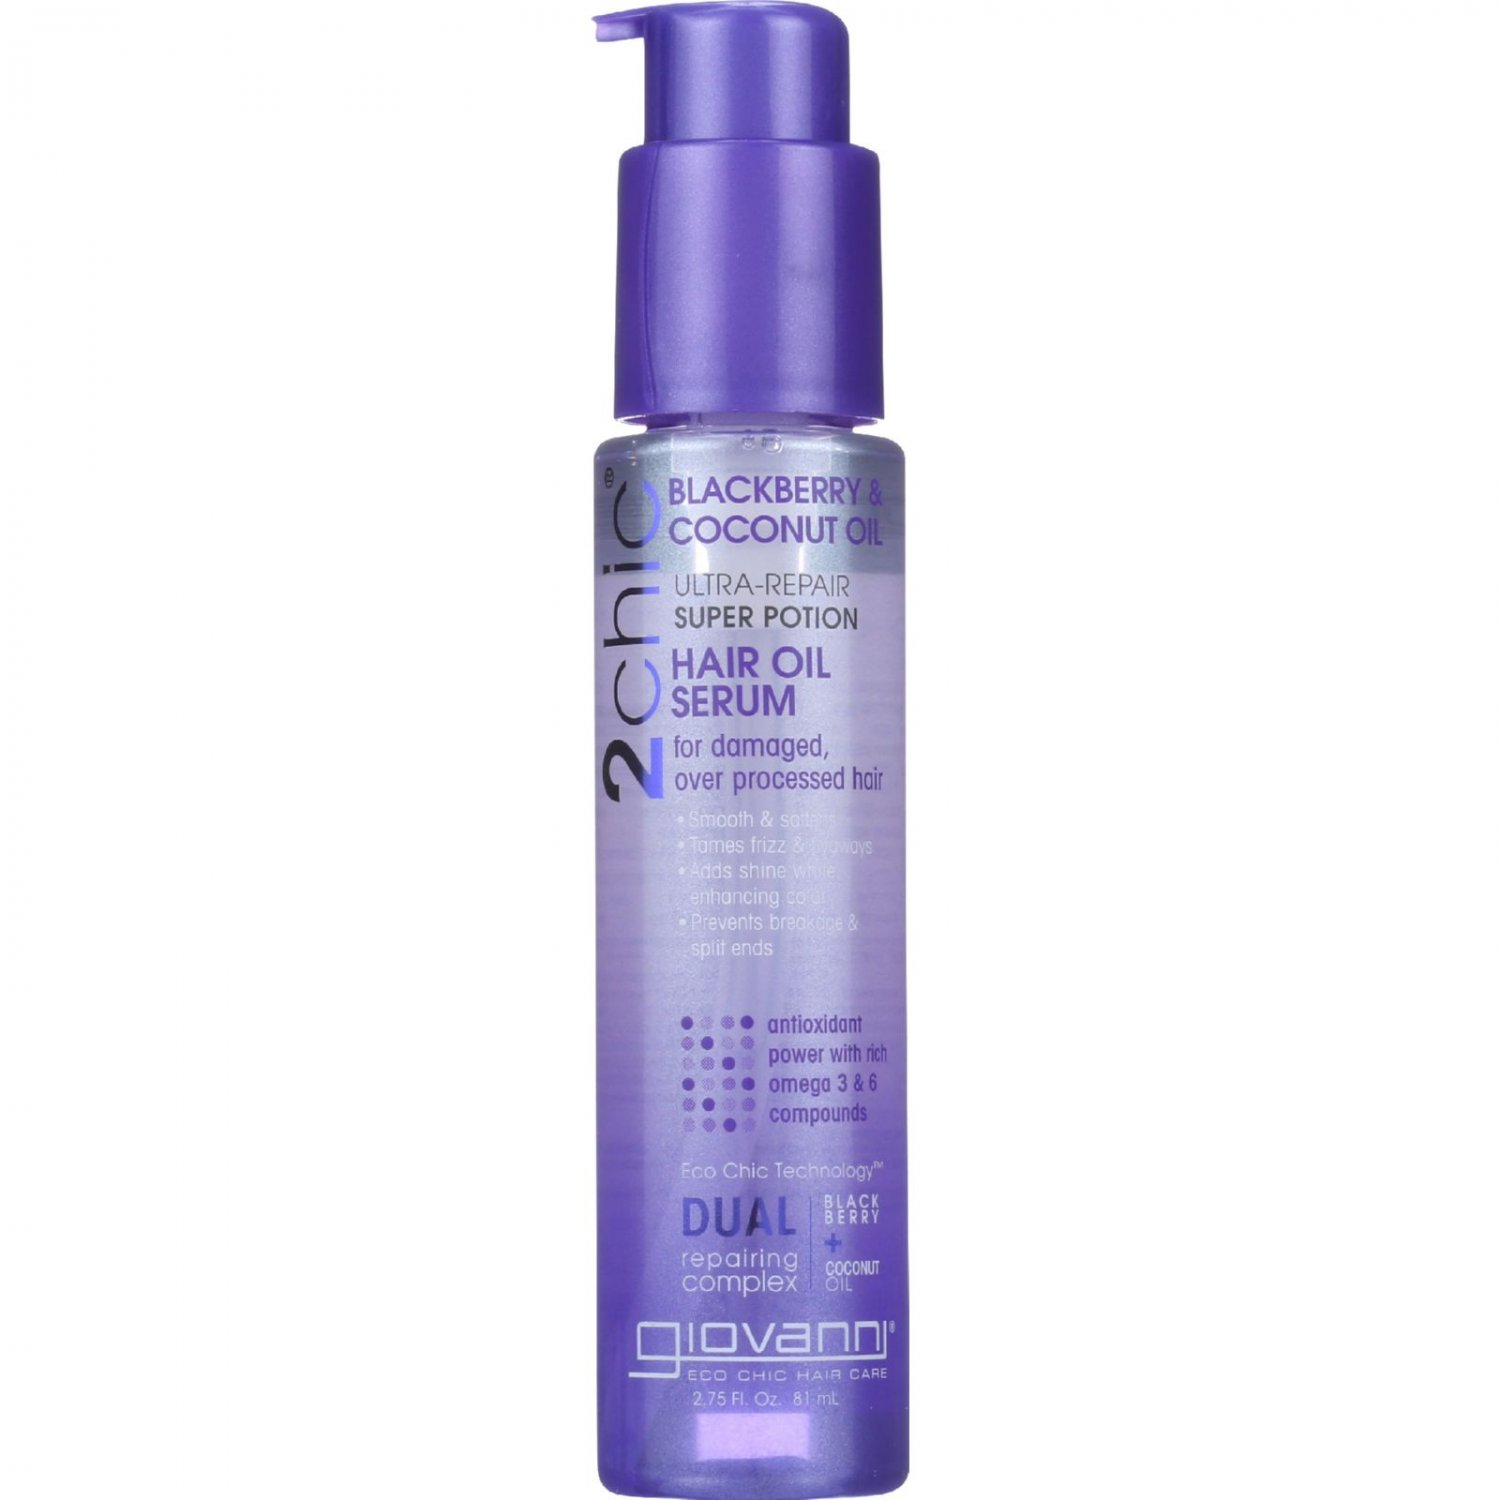 Giovanni Hair Care Products Hair Oil Serum - 2Chic - Repairing Super Potion - Blackberry and Coconut